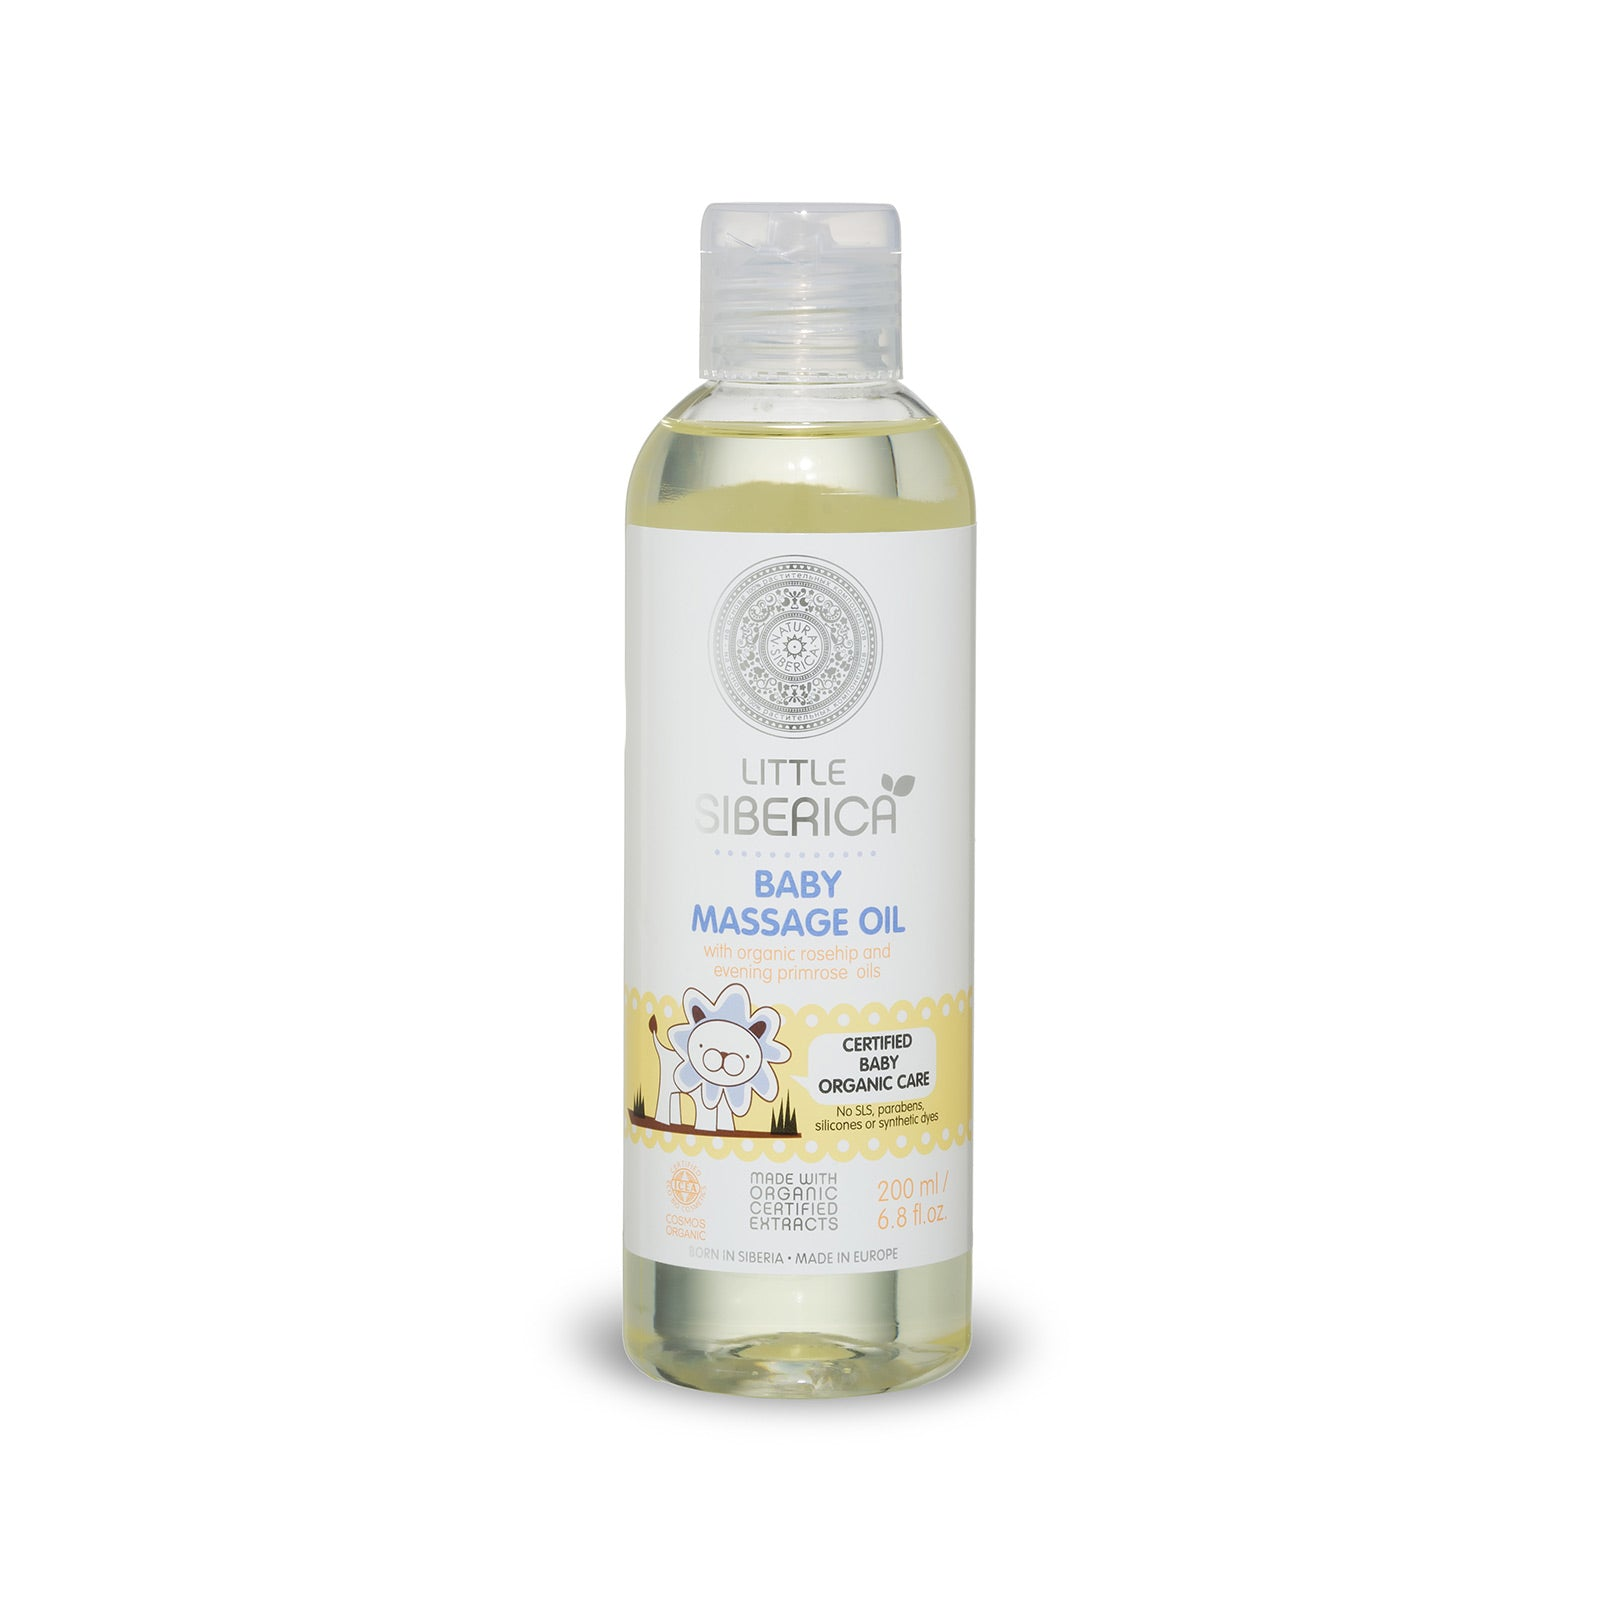 Little Siberica Baby Massage Oil, 200ml